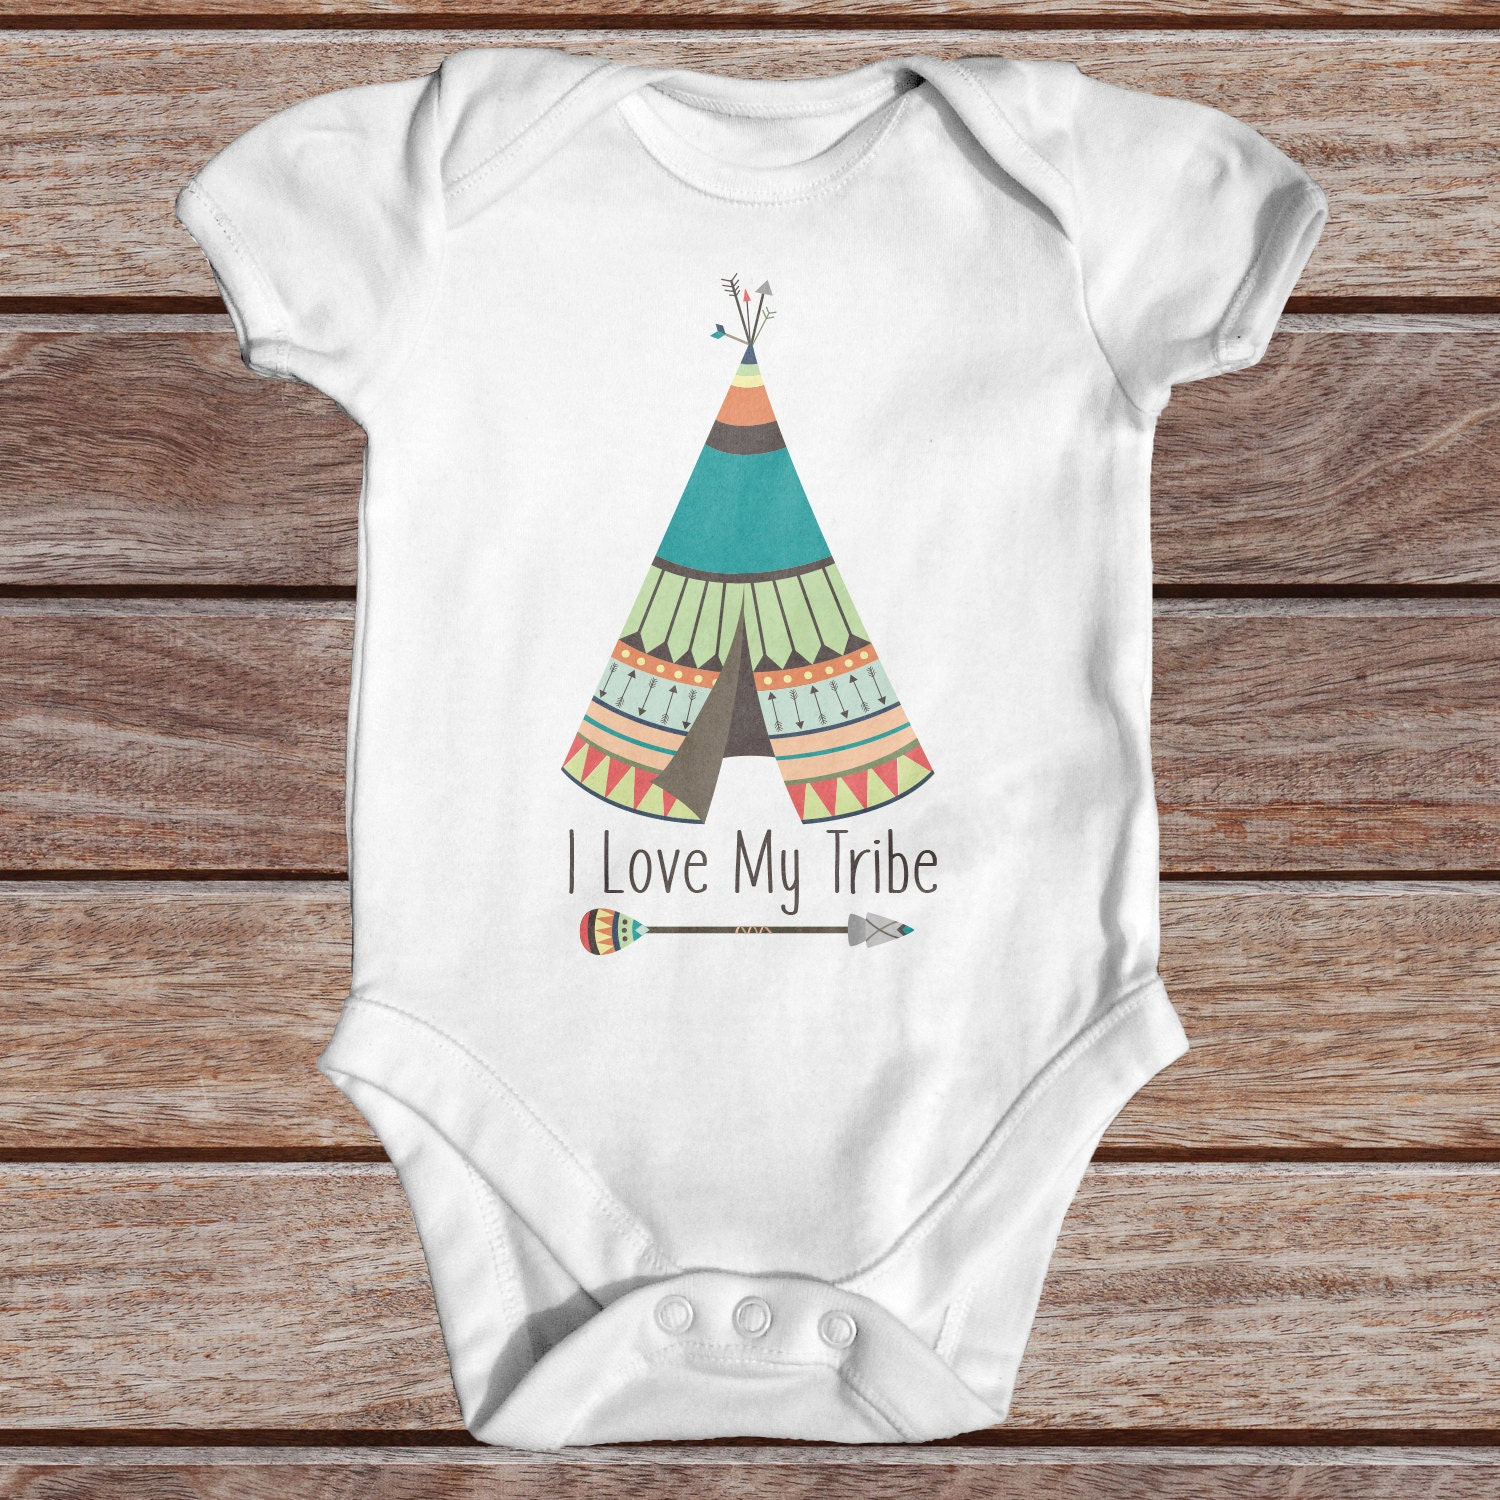 I Love My Tribe Bodysuit  Cute Baby Clothes  Tribal Baby Bodysuit  Cute Baby Clothes  Boho Baby Clothes  Wild Baby Bodysuit  Newborn